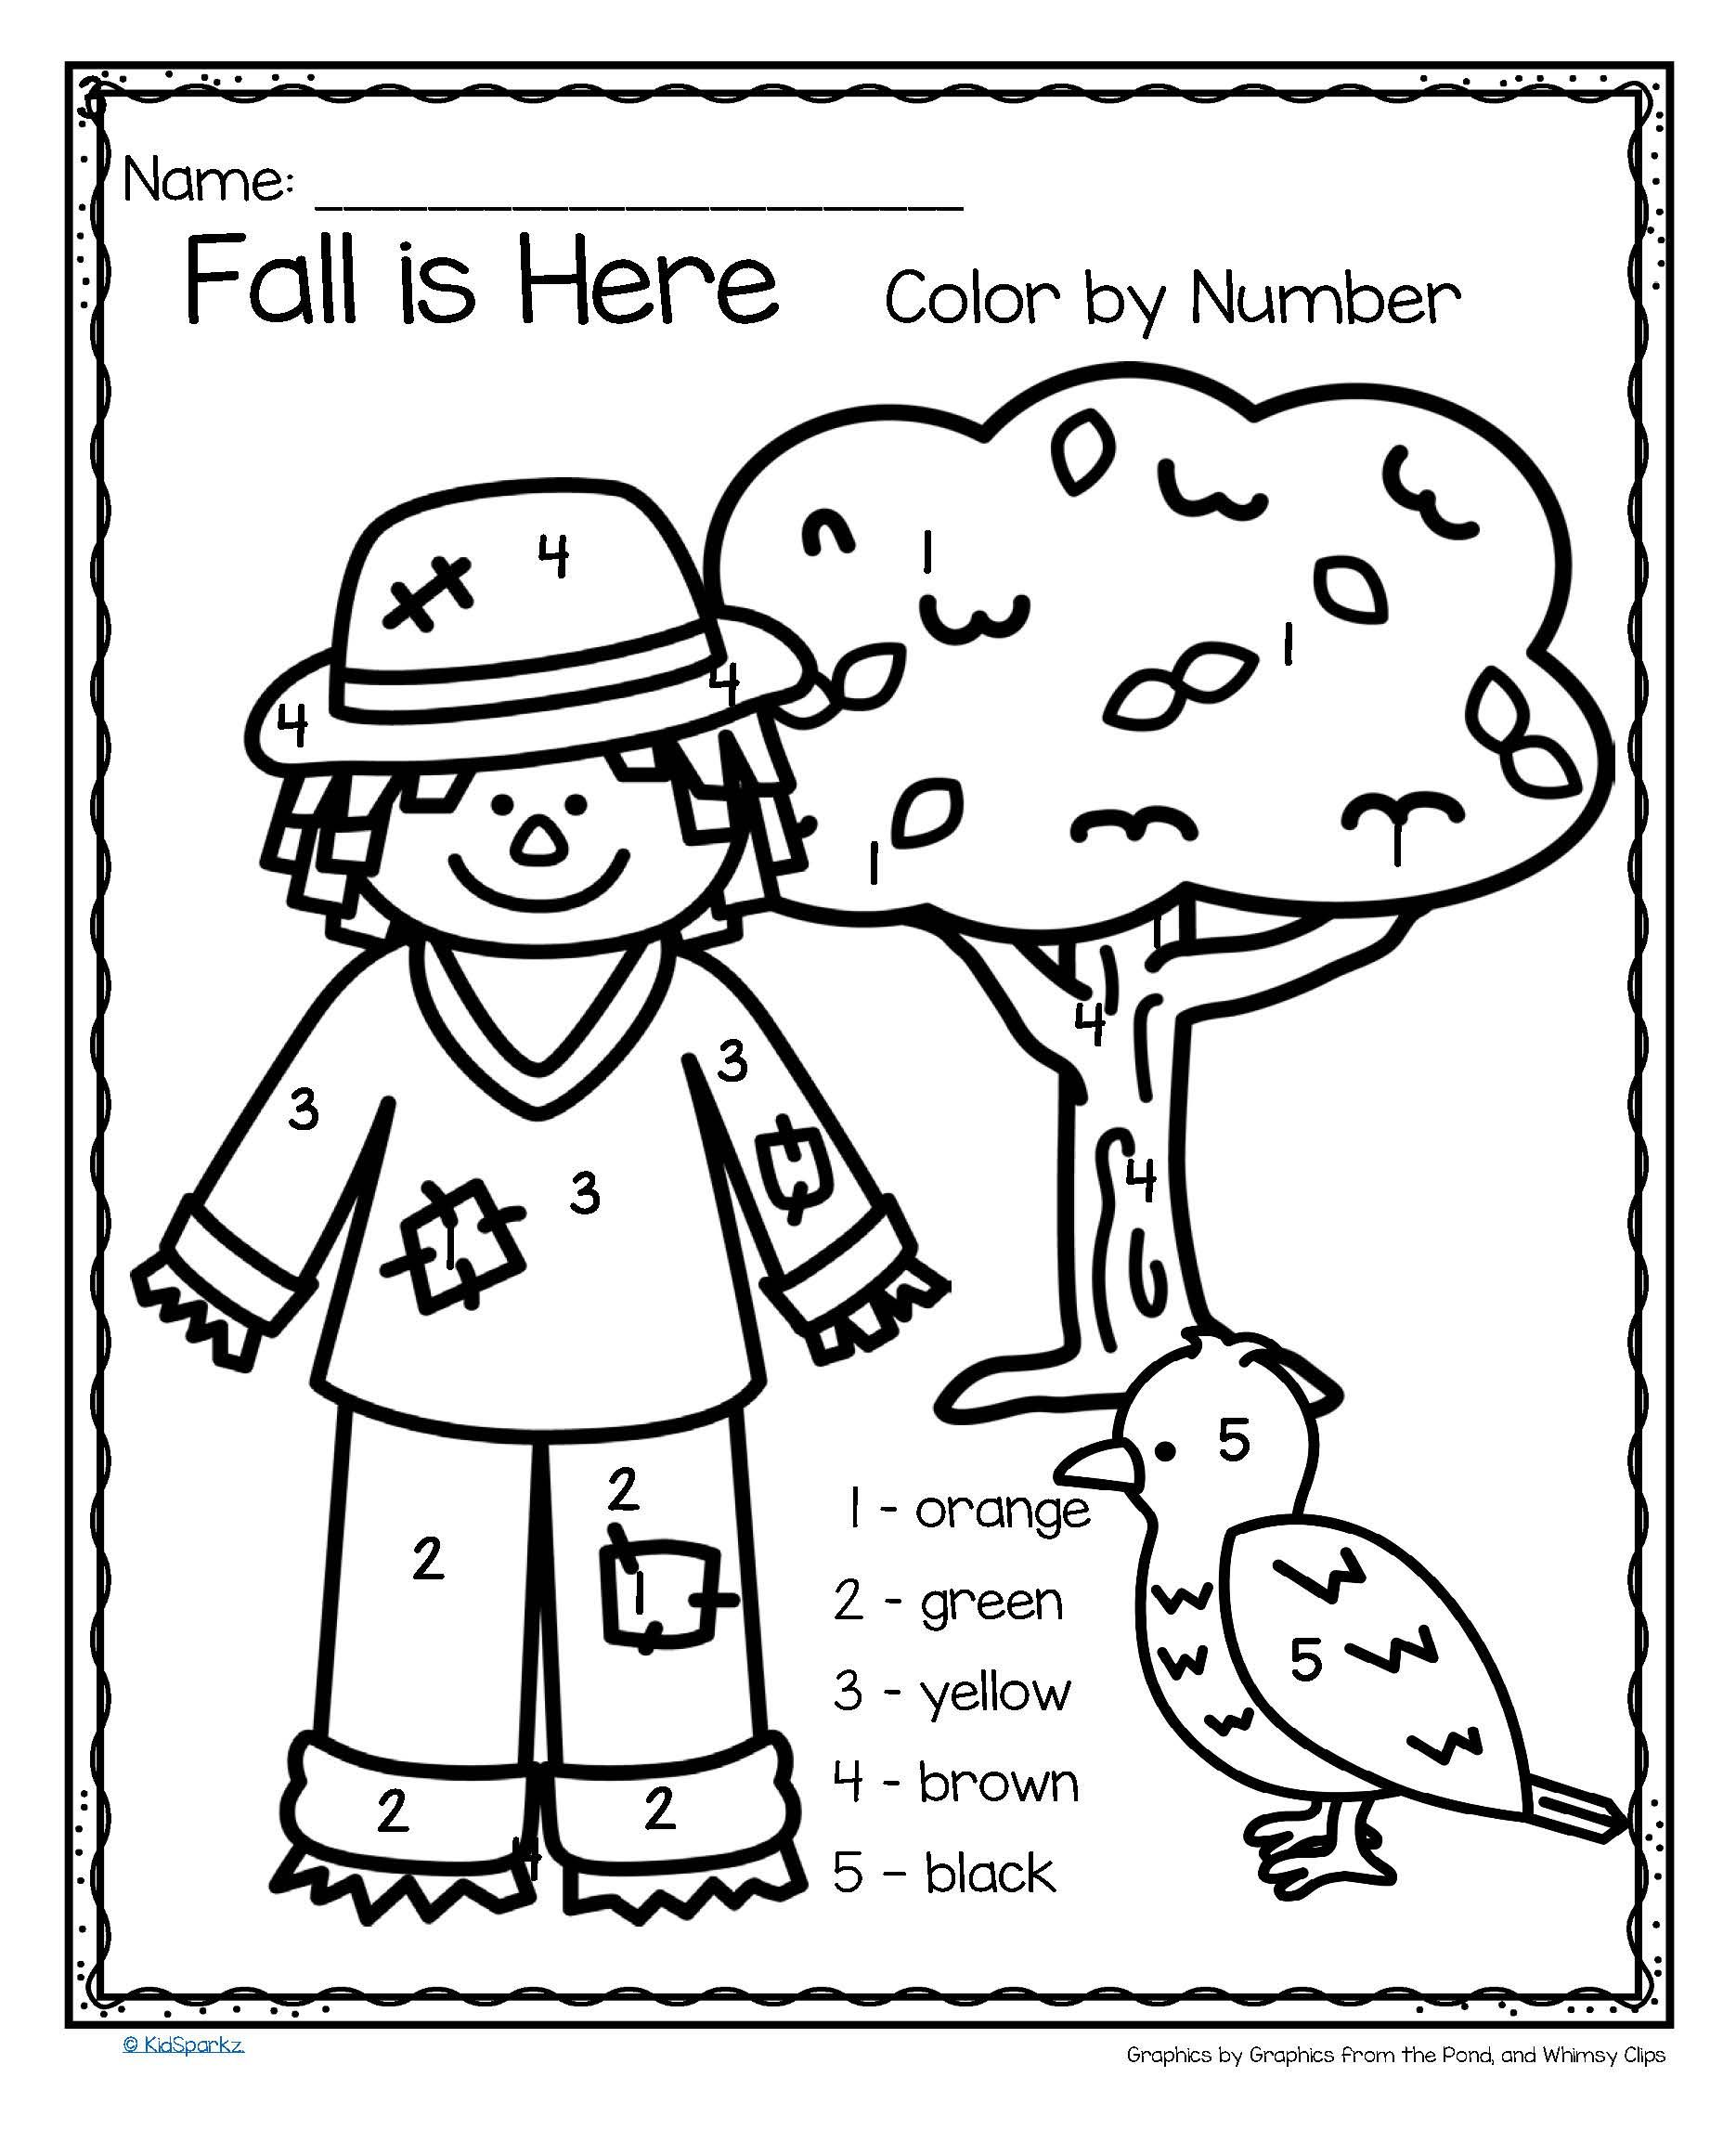 Fall Is Here Color By Number Printables 3 Pages Fall Preschool Activities Fall Kindergarten Fall Preschool